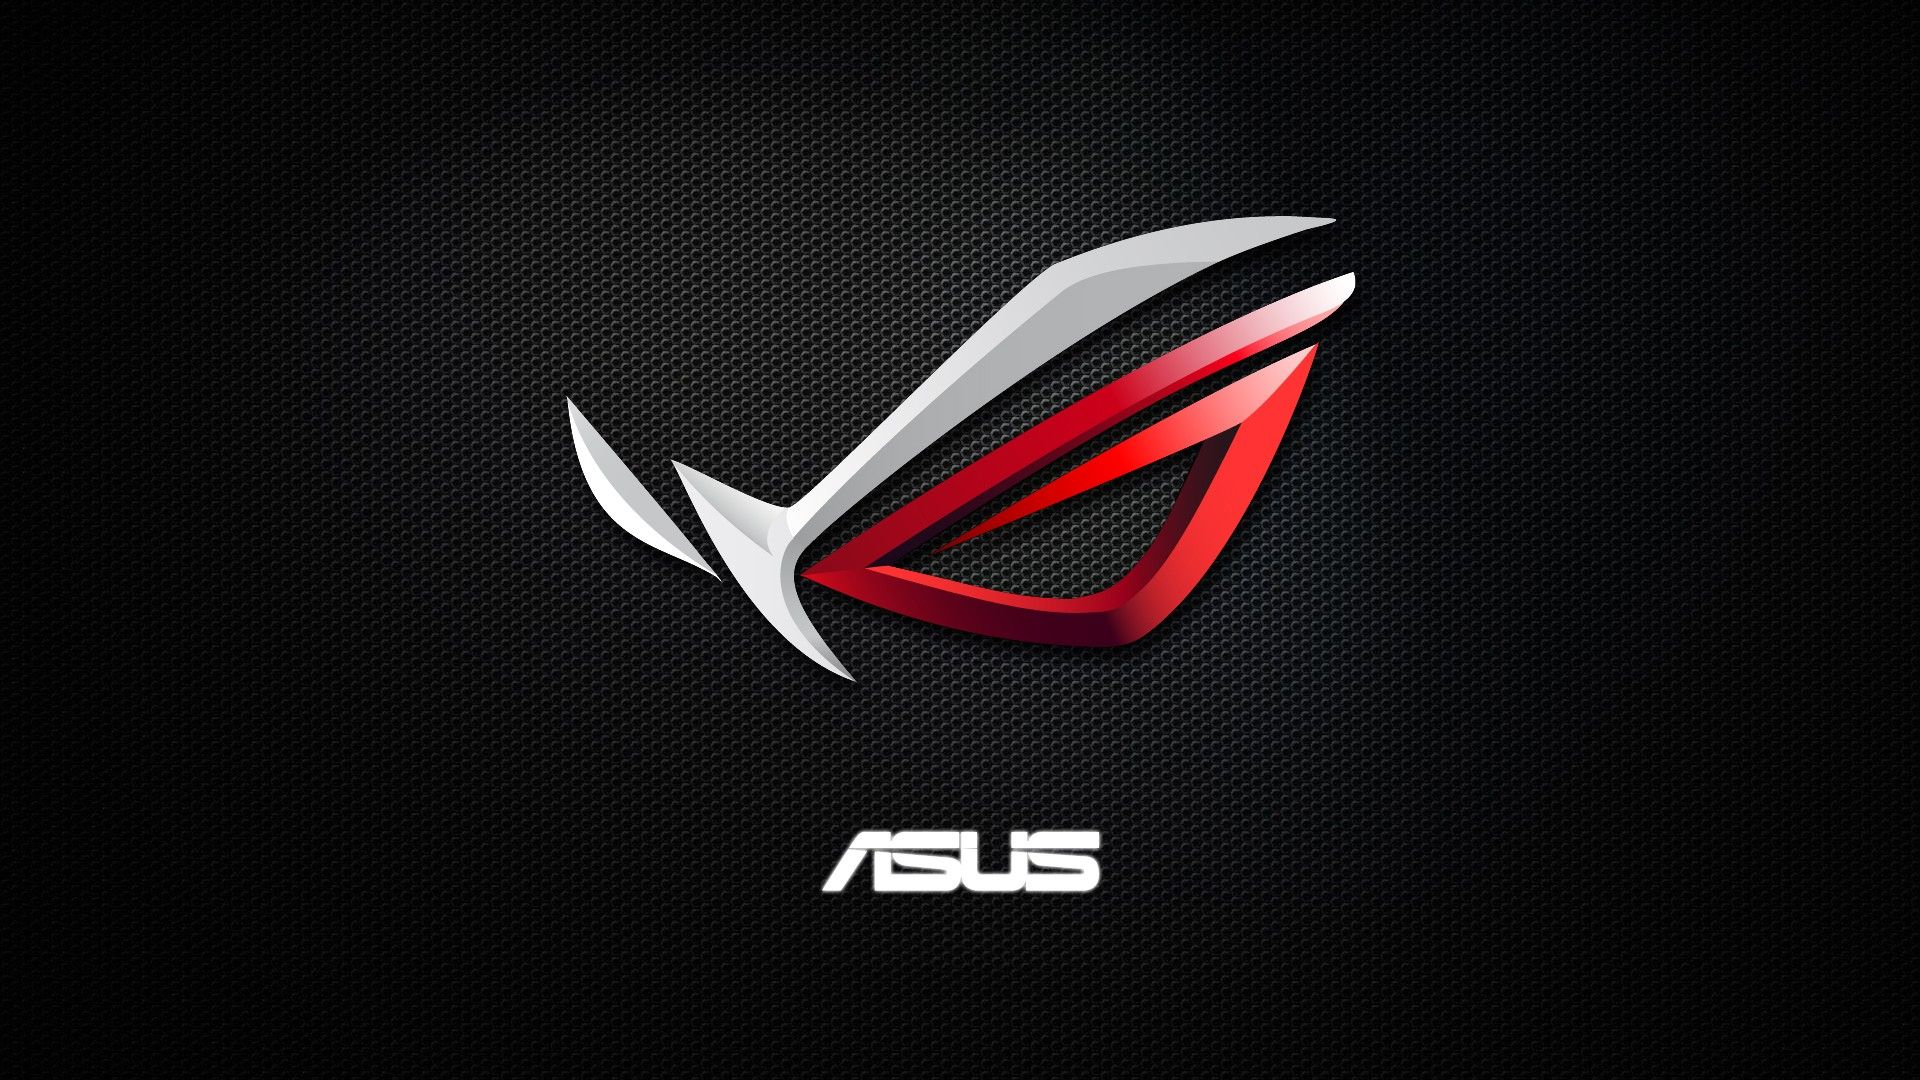 asus full hd wallpaper and background image | 1920x1080 | id:756101